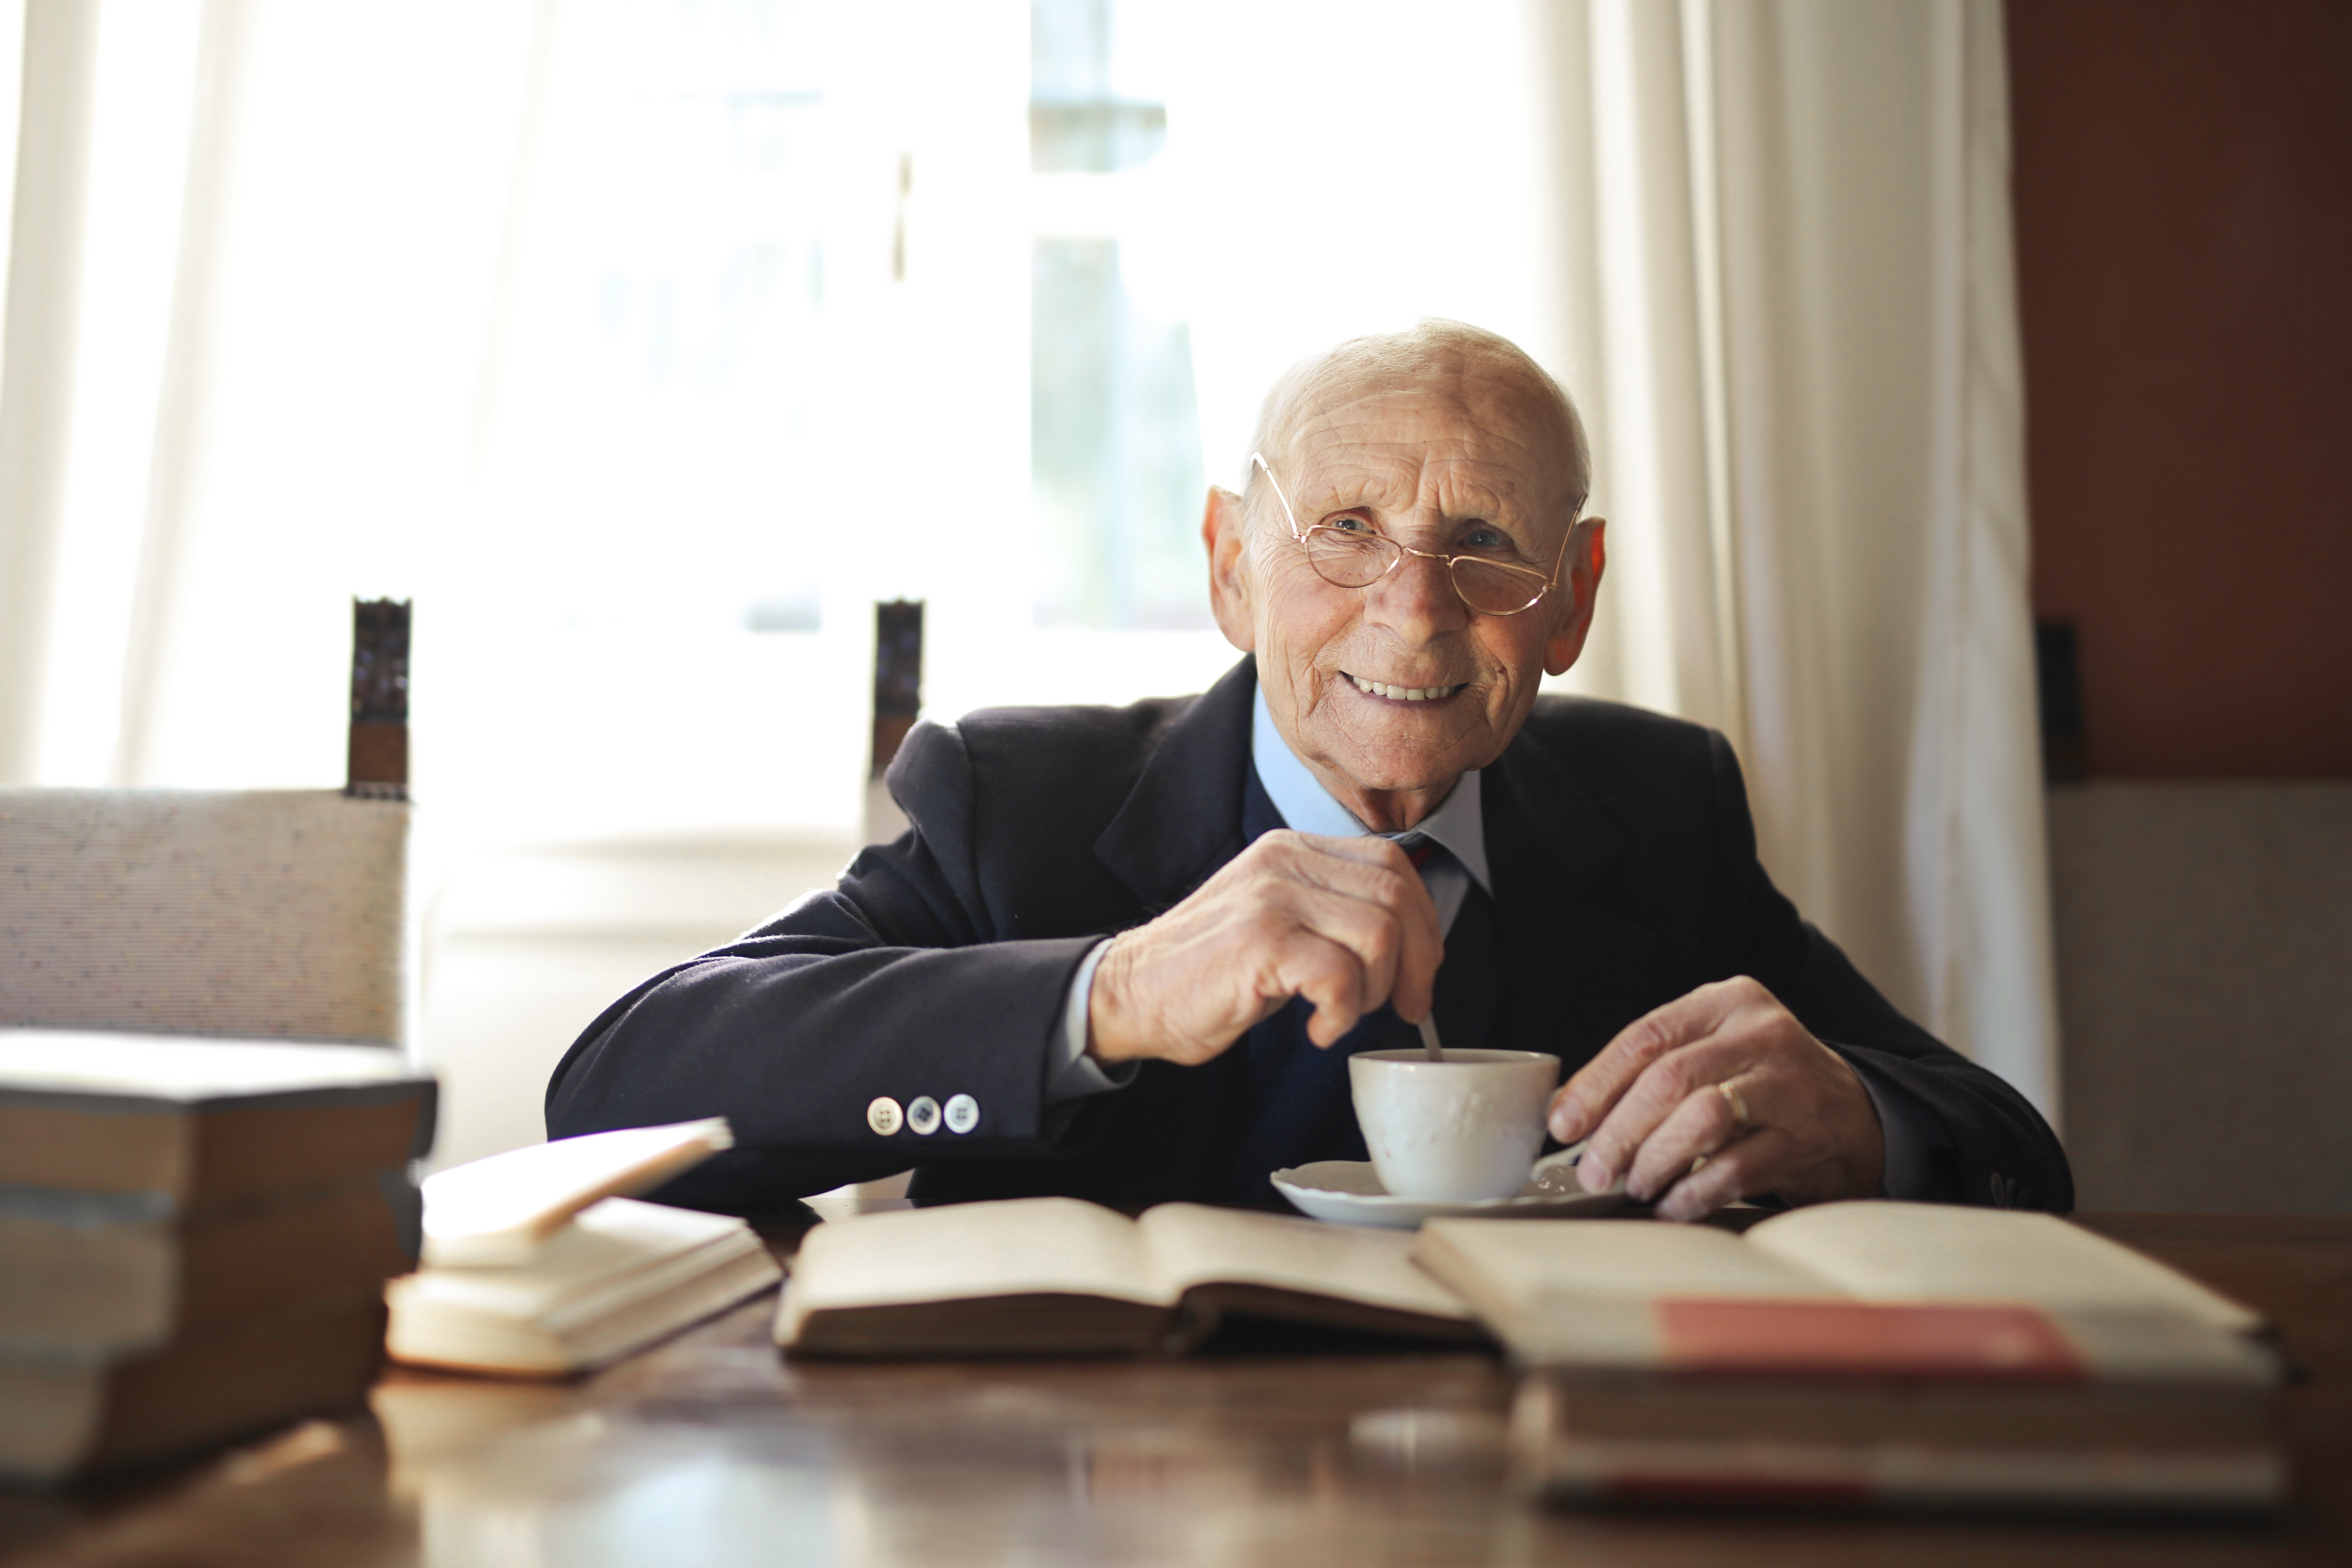 senior man enjoying a book and a cup of coffee